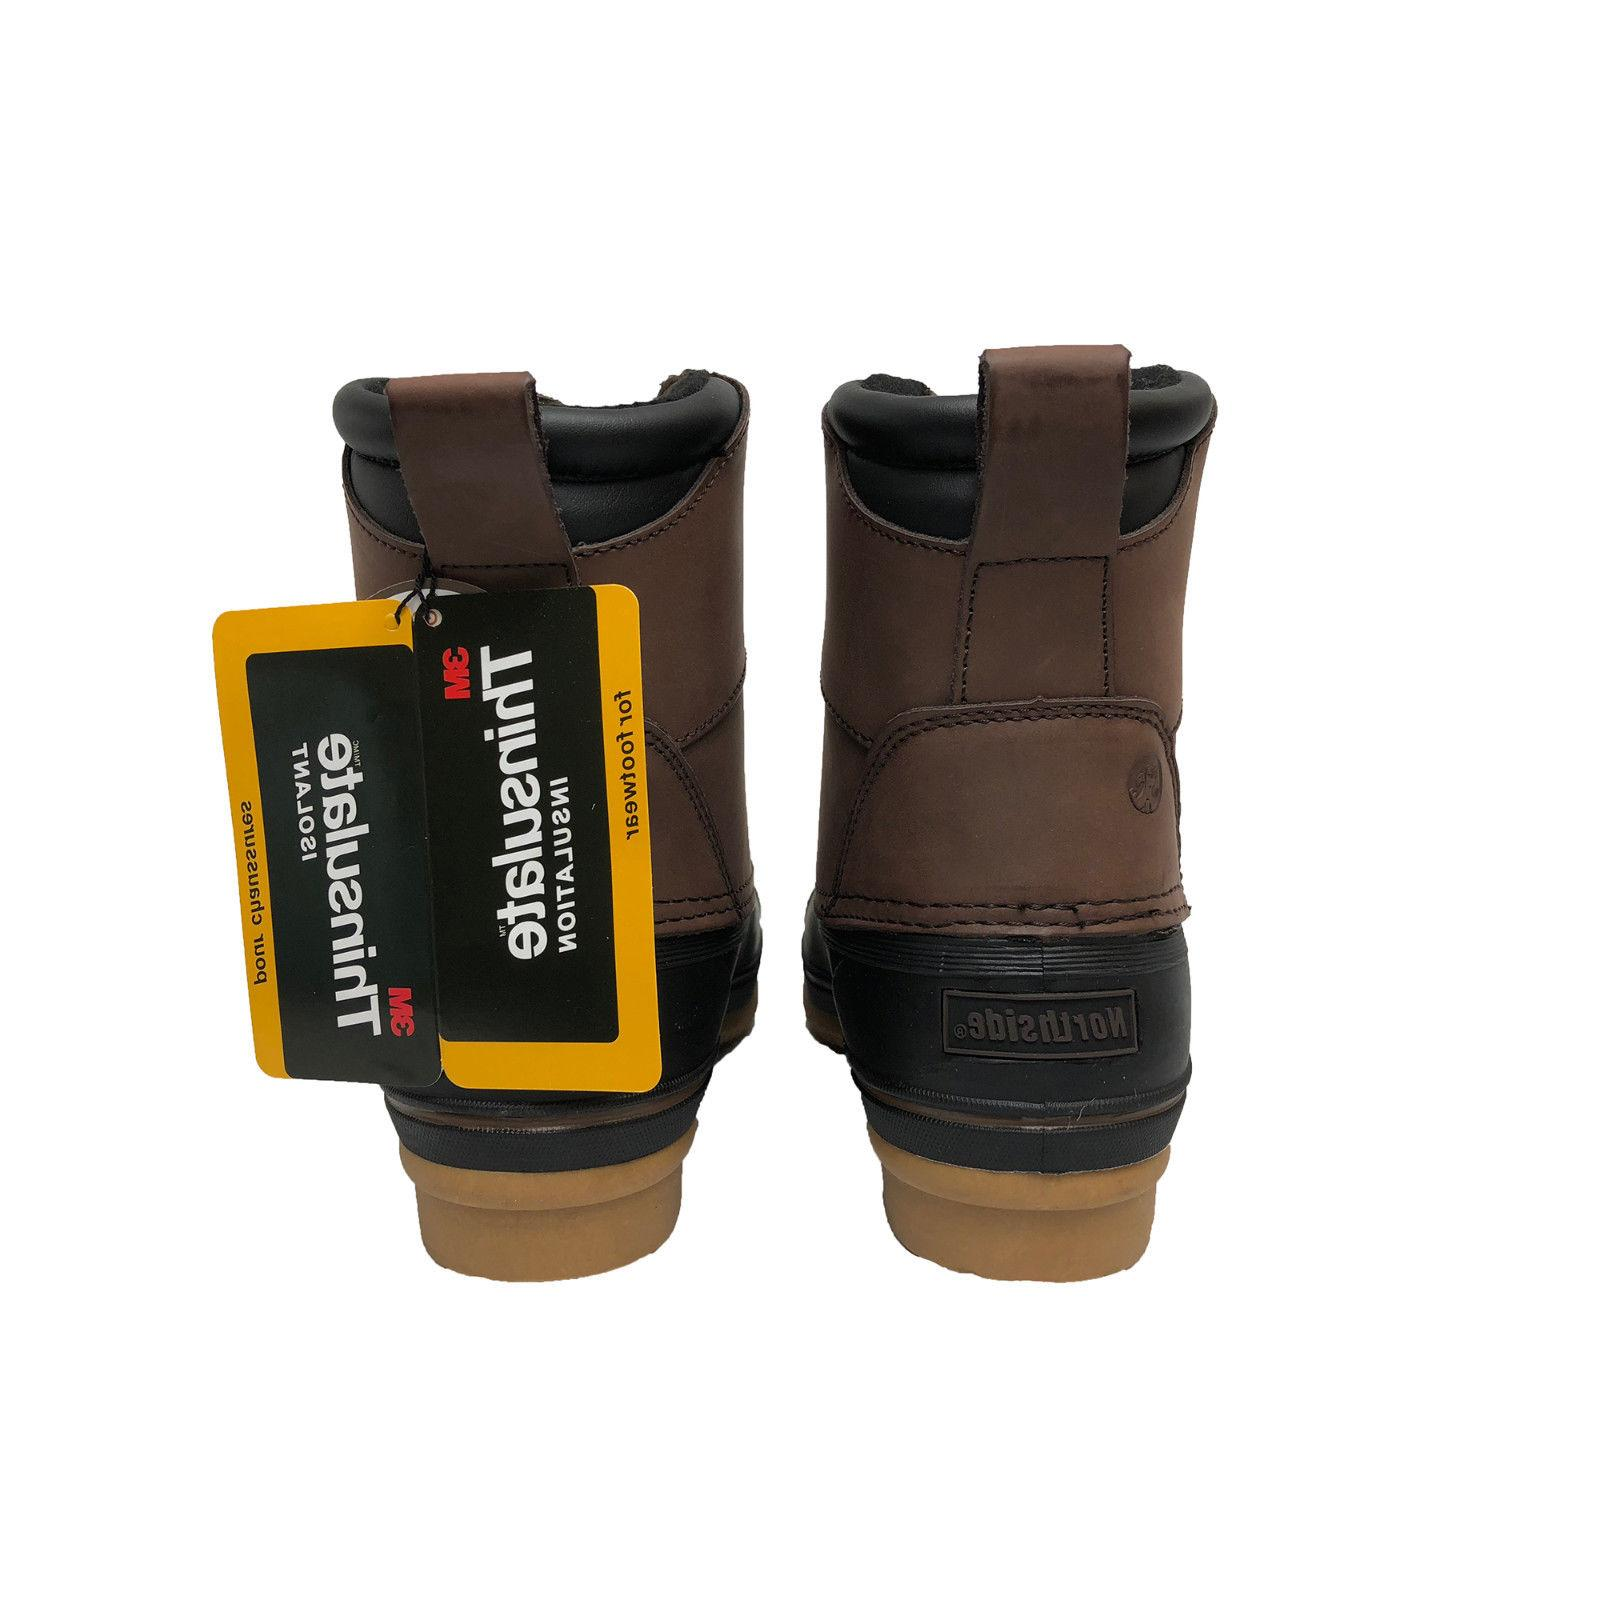 Northside Lewiston Boots Waterproof Snow Fully